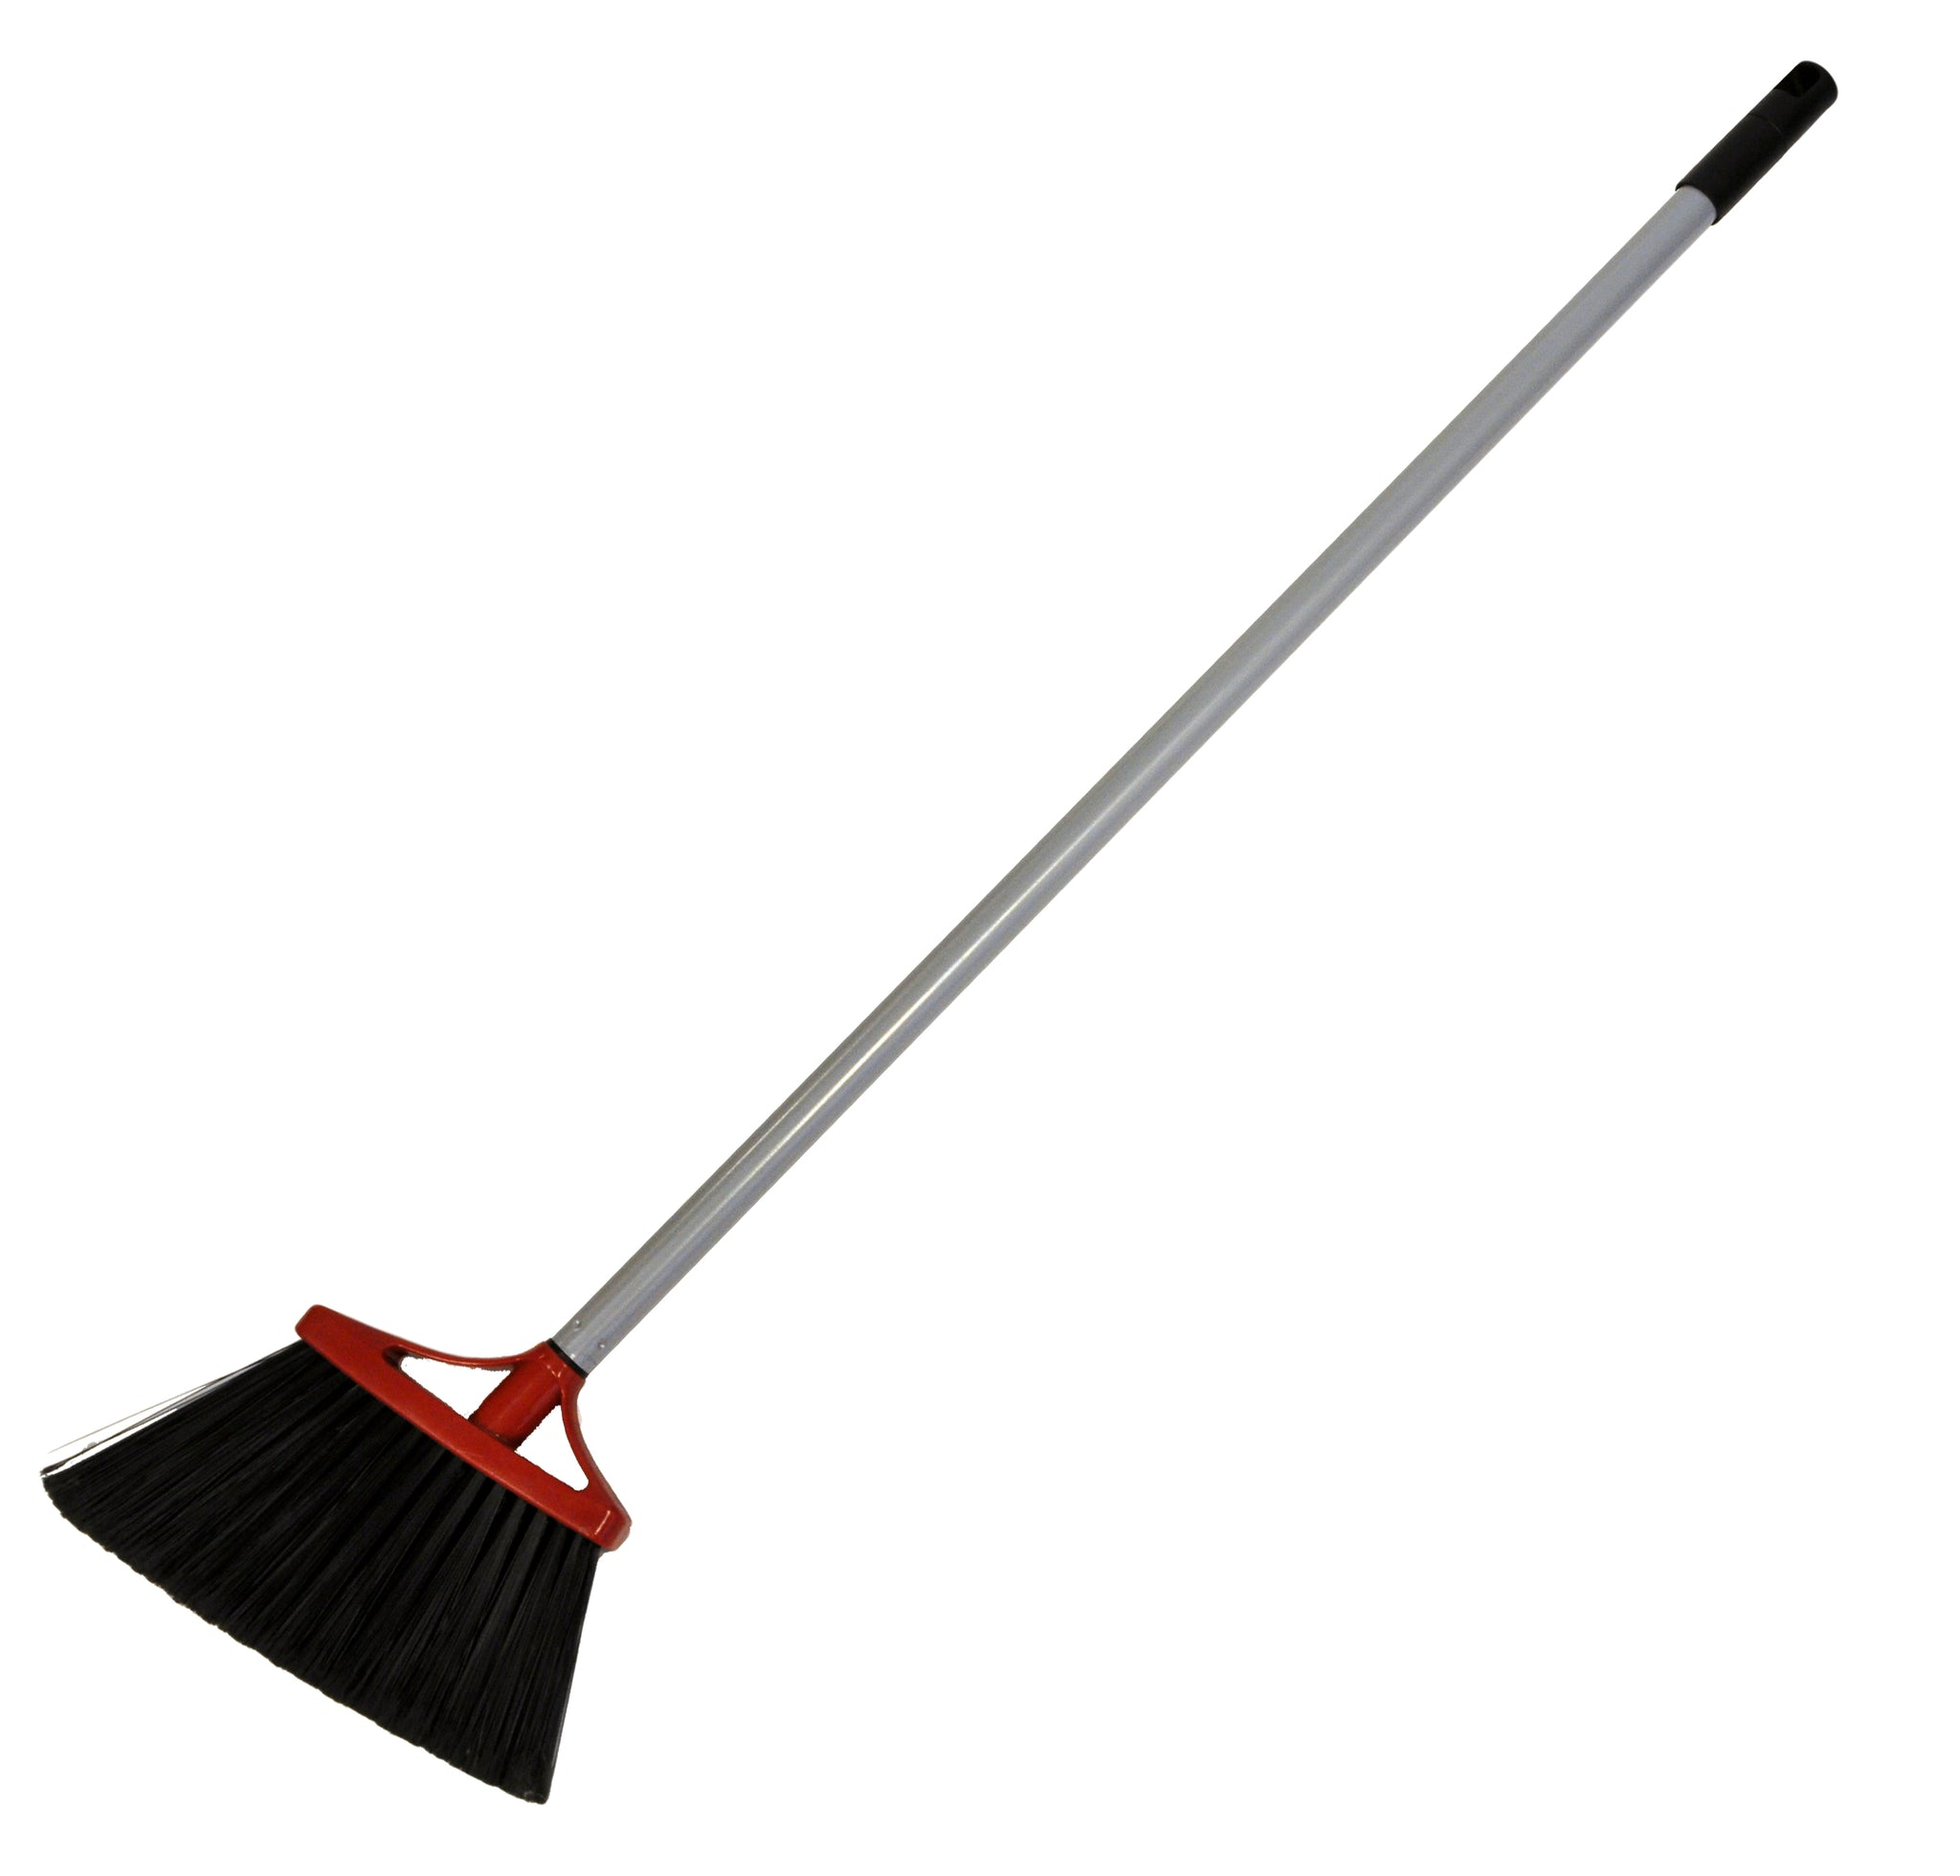 914 x 305mm Angle Lobby Broom